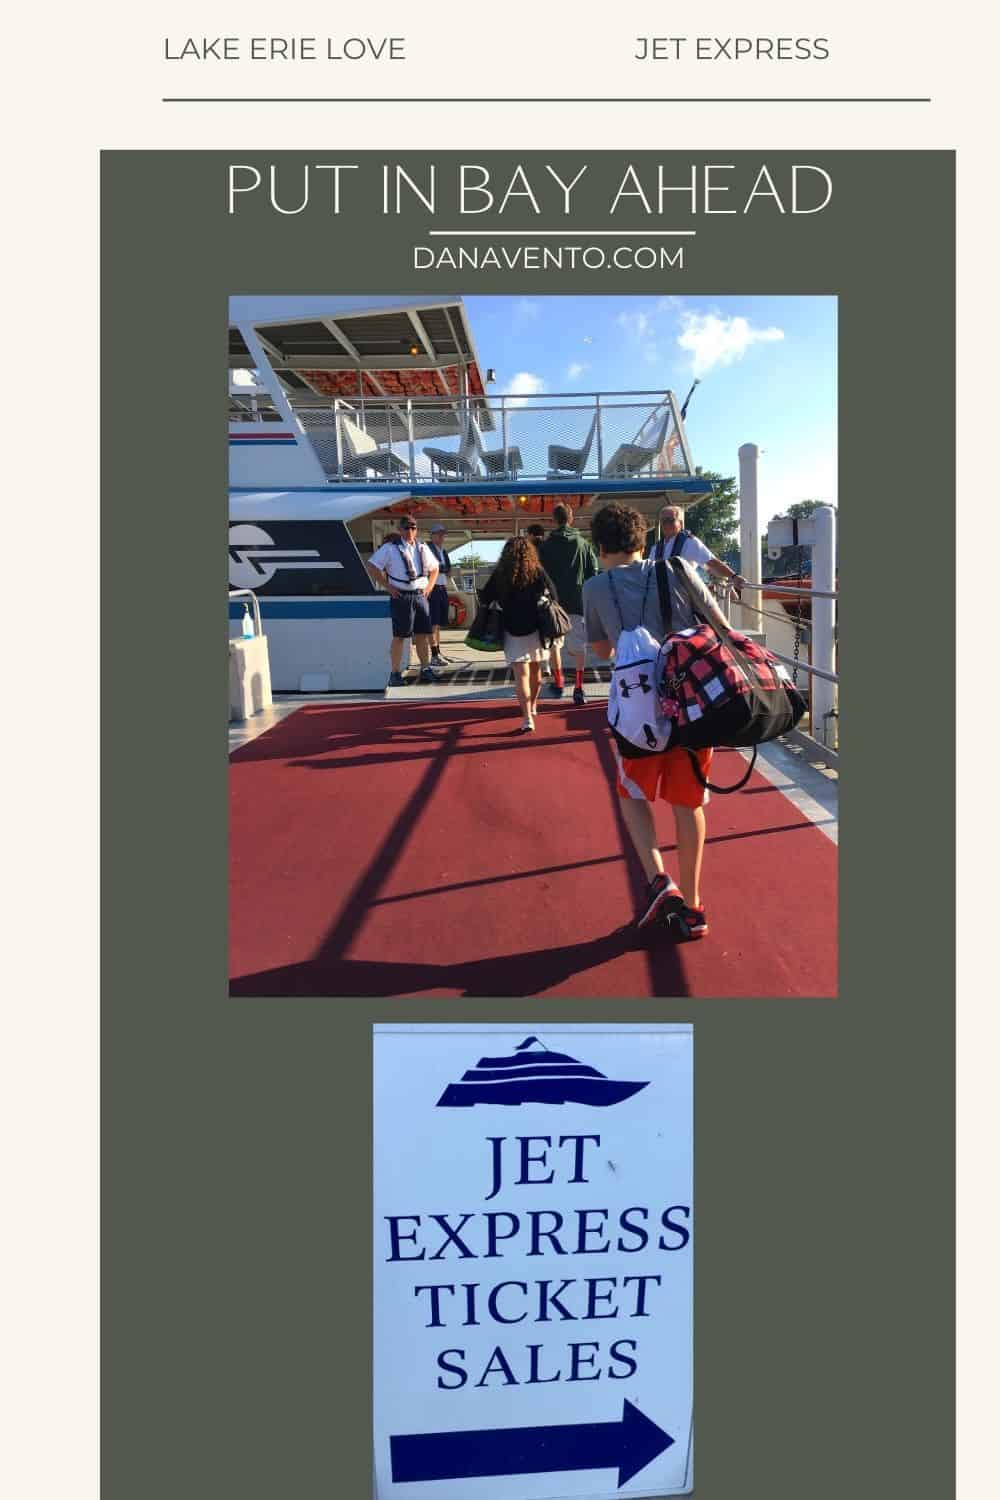 Jet Express Boarding Lake Erie Shores and Islands